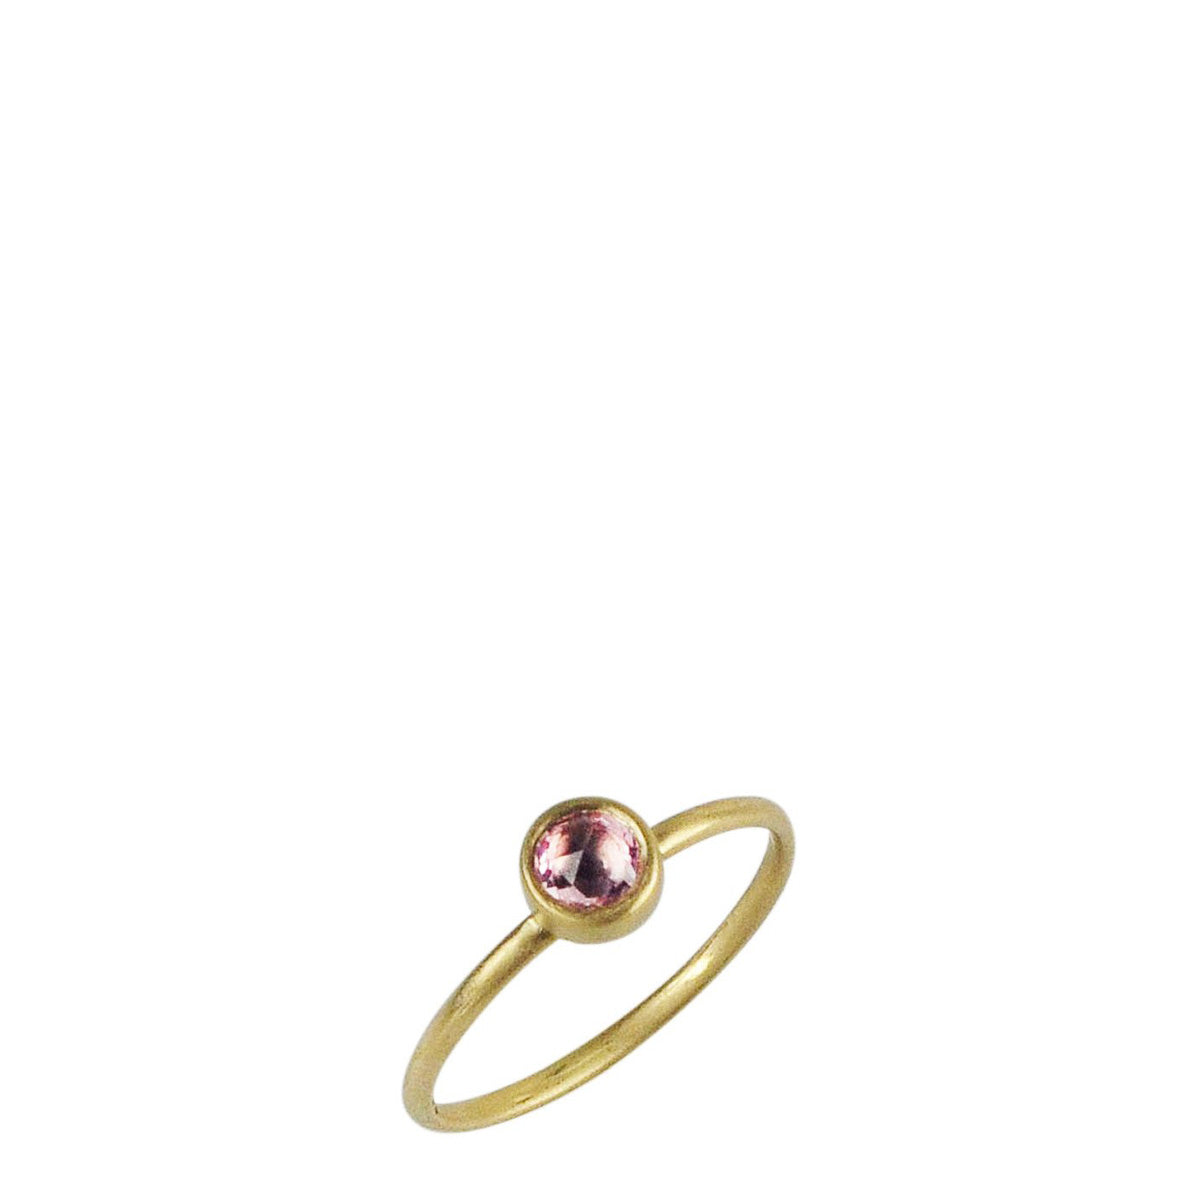 18K Gold Tiny Pink Sapphire Ring